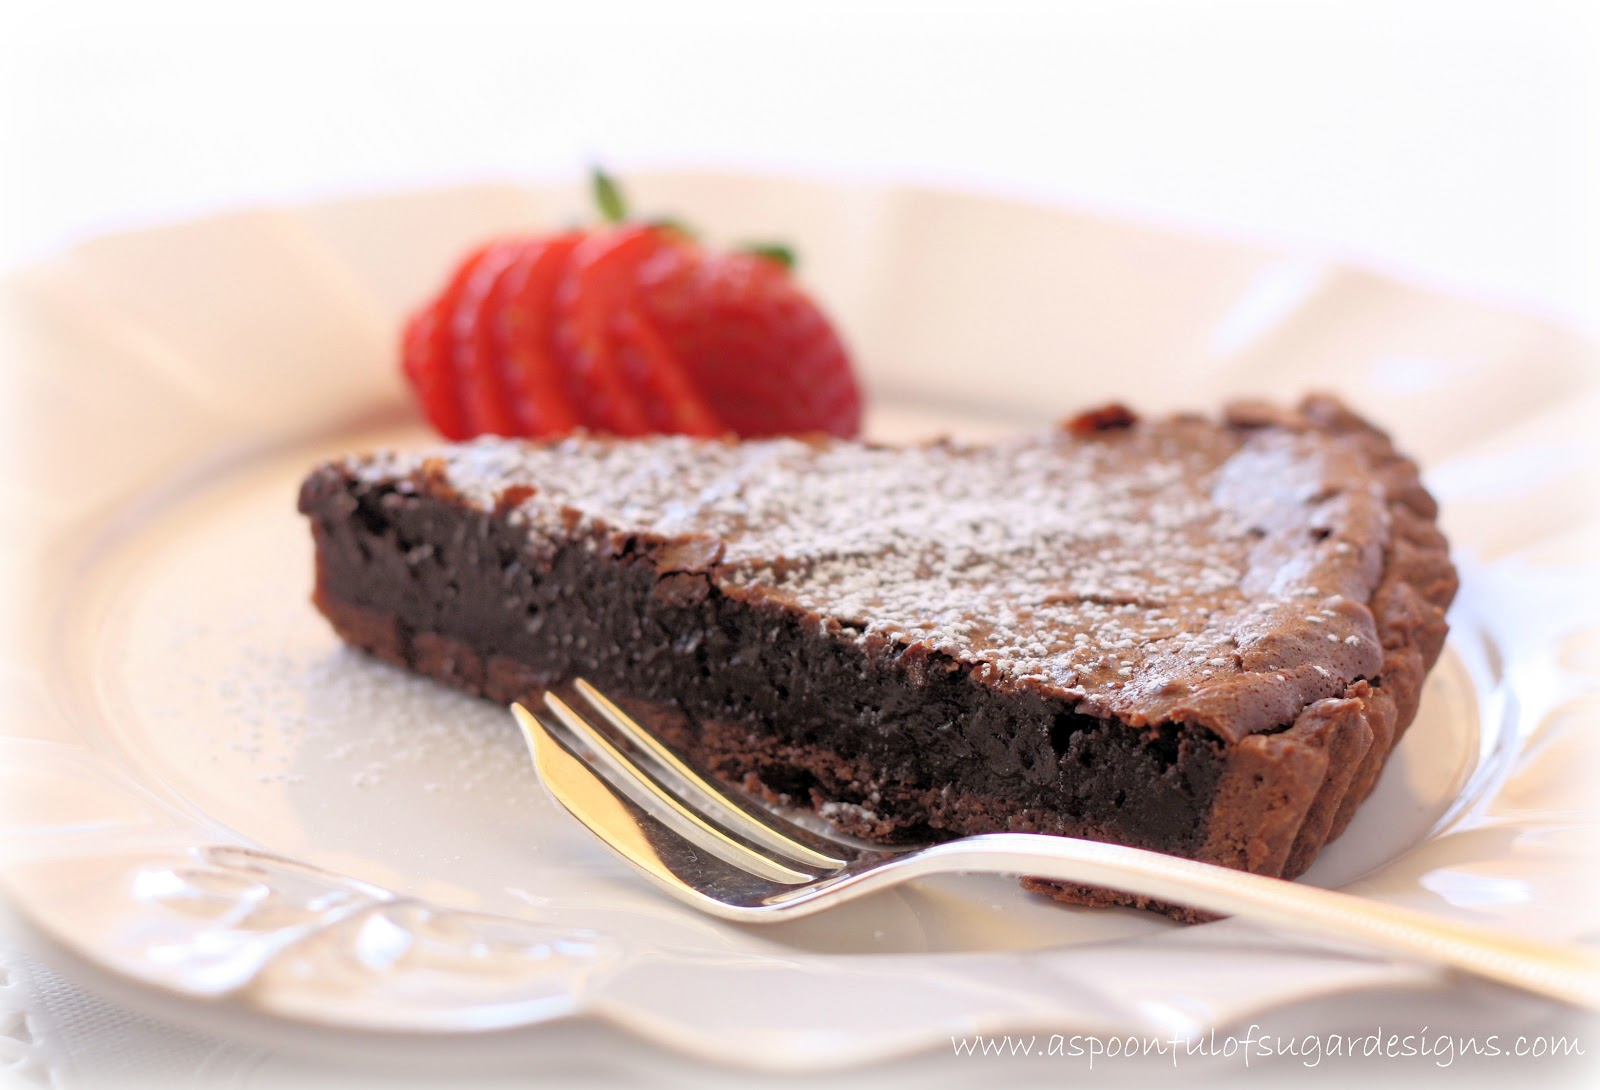 Chocolate Tart - A Spoonful of Sugar